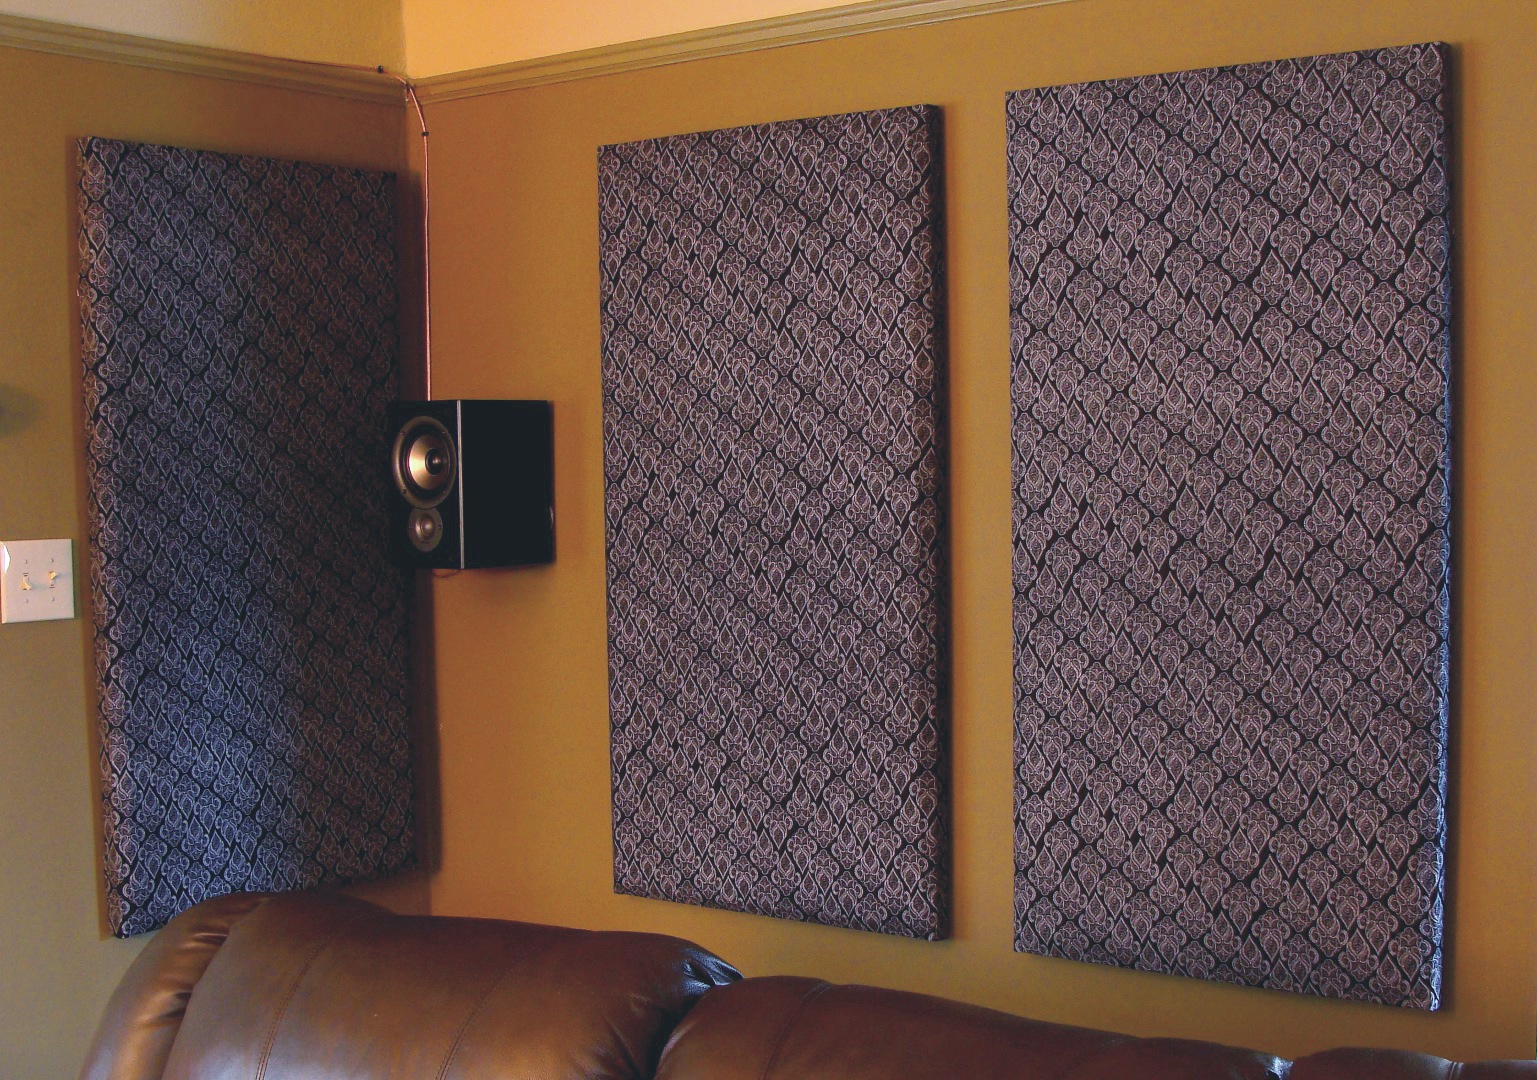 How to build your own acoustic panels diy Soundproofing for walls interior